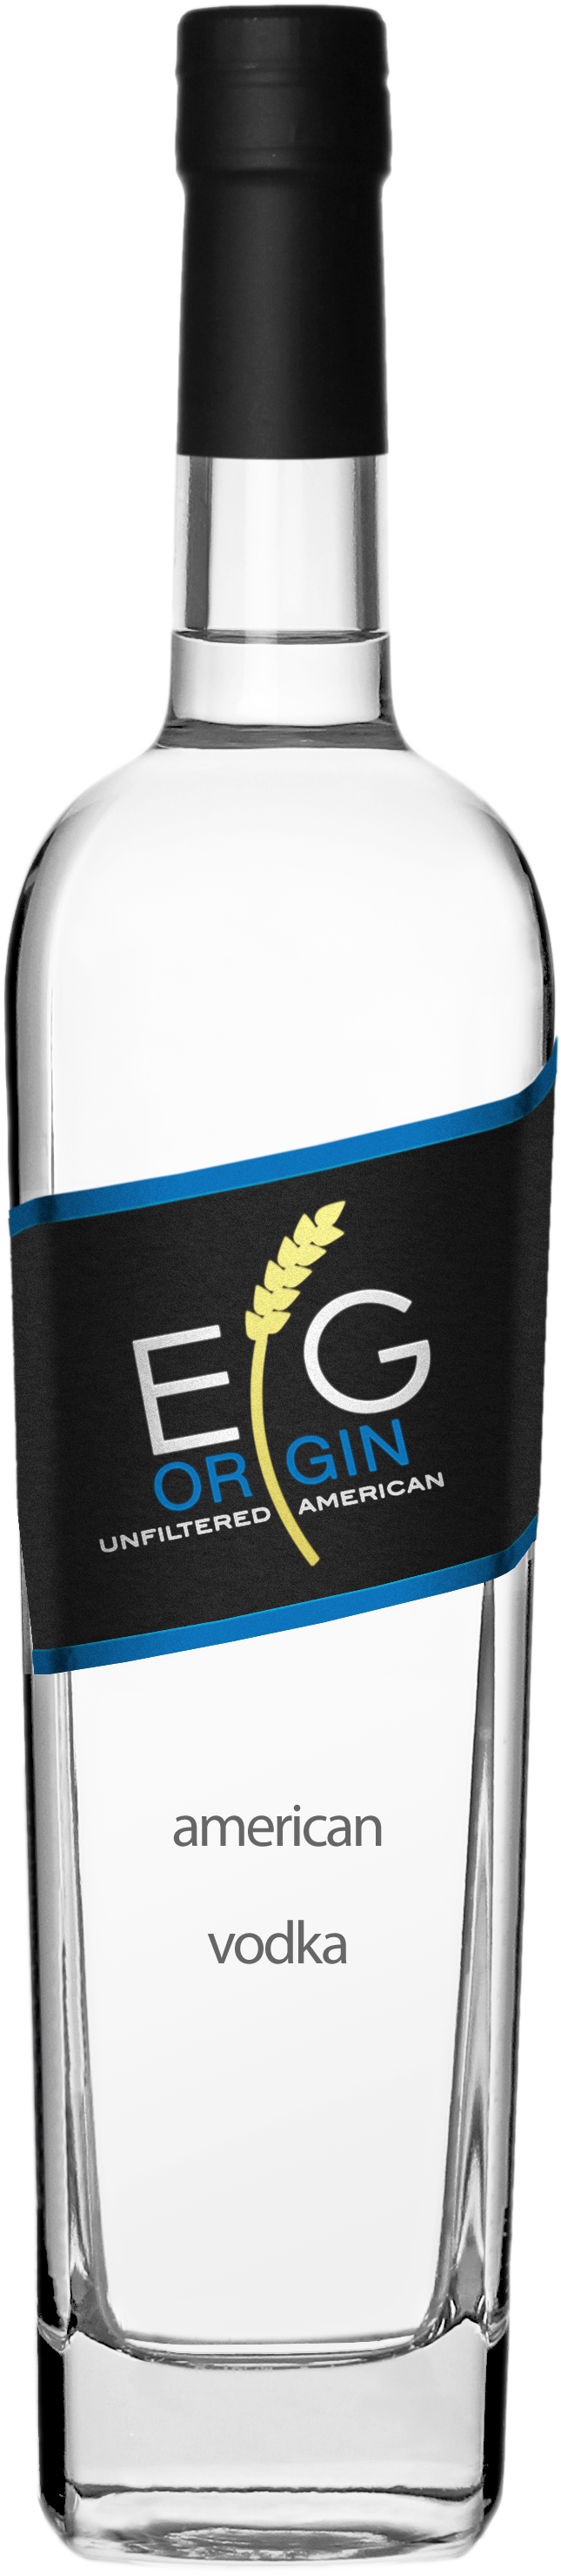 EG Origin Unfiltered American Vodka